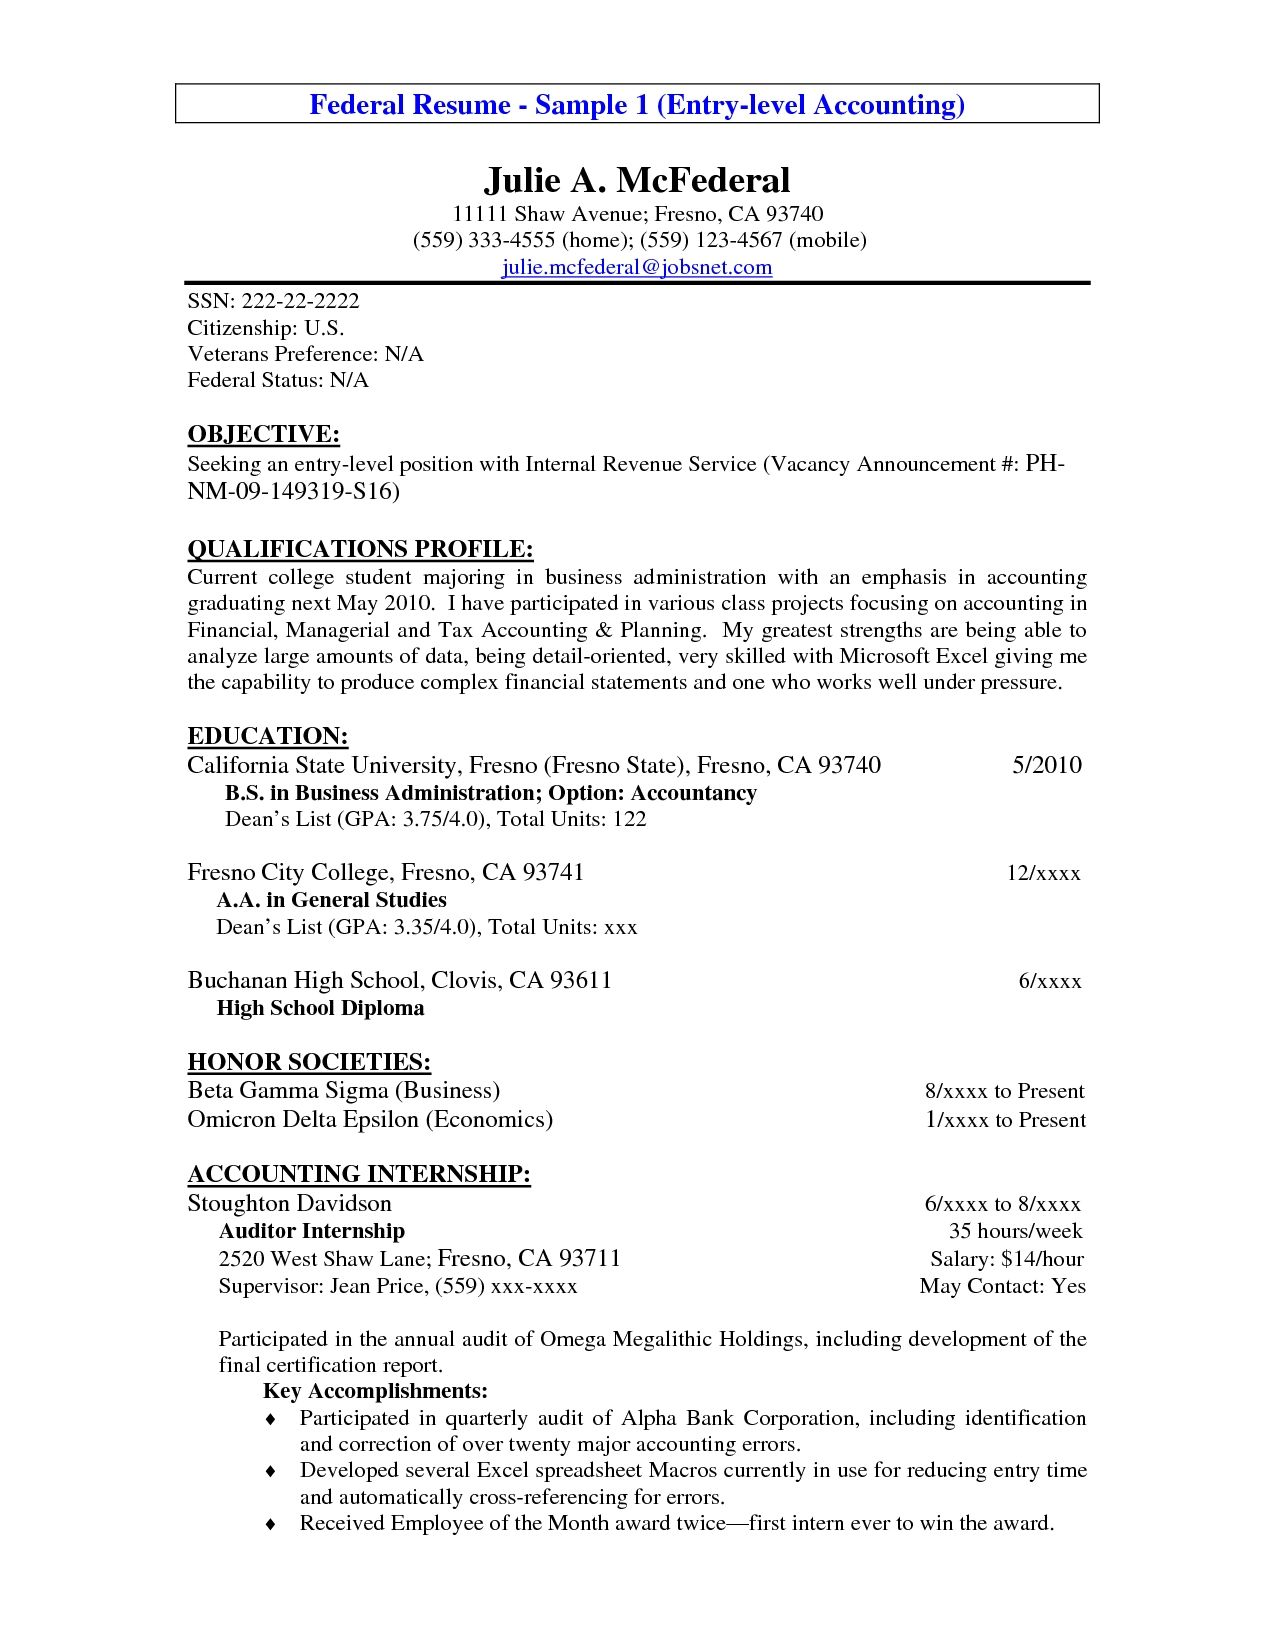 Accounting Resume Template Entry Level Resume Example Entry Level Accounting Resume Sample